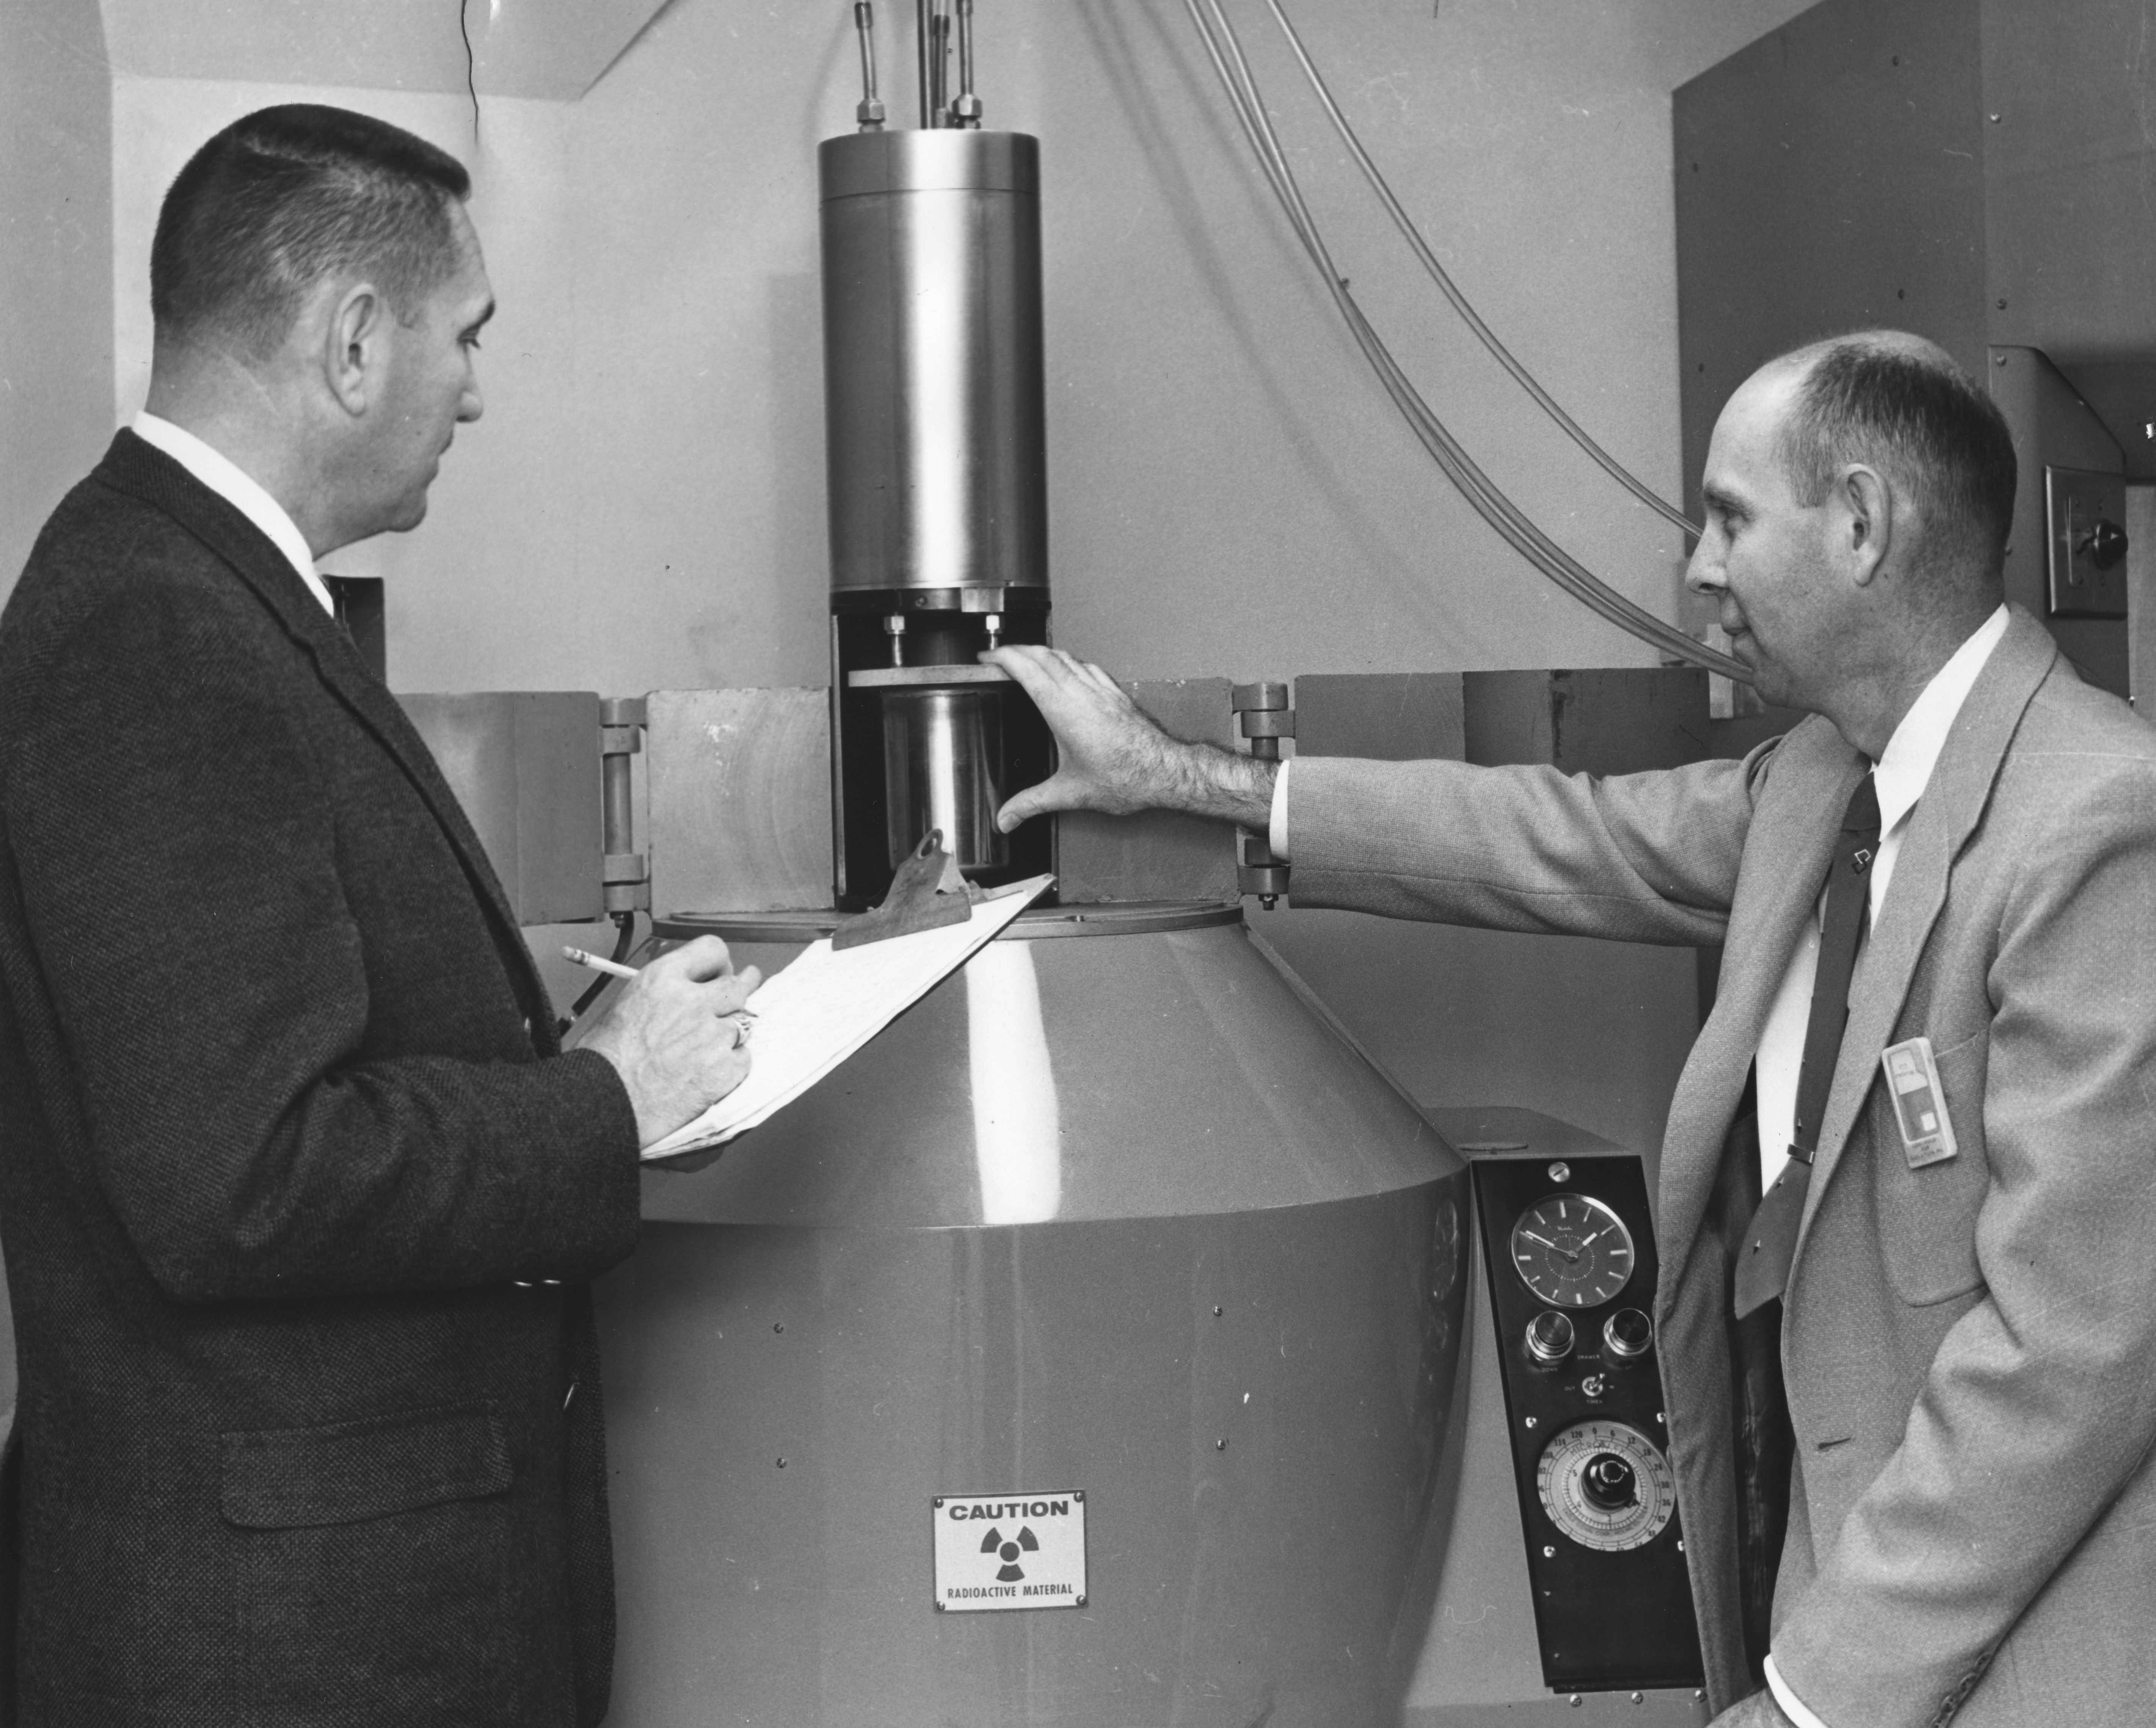 Professor Henry A. Rutherford (left) and Dr. A. Armstrong examine the Cobalt-60 source in the college's radiological laboratory